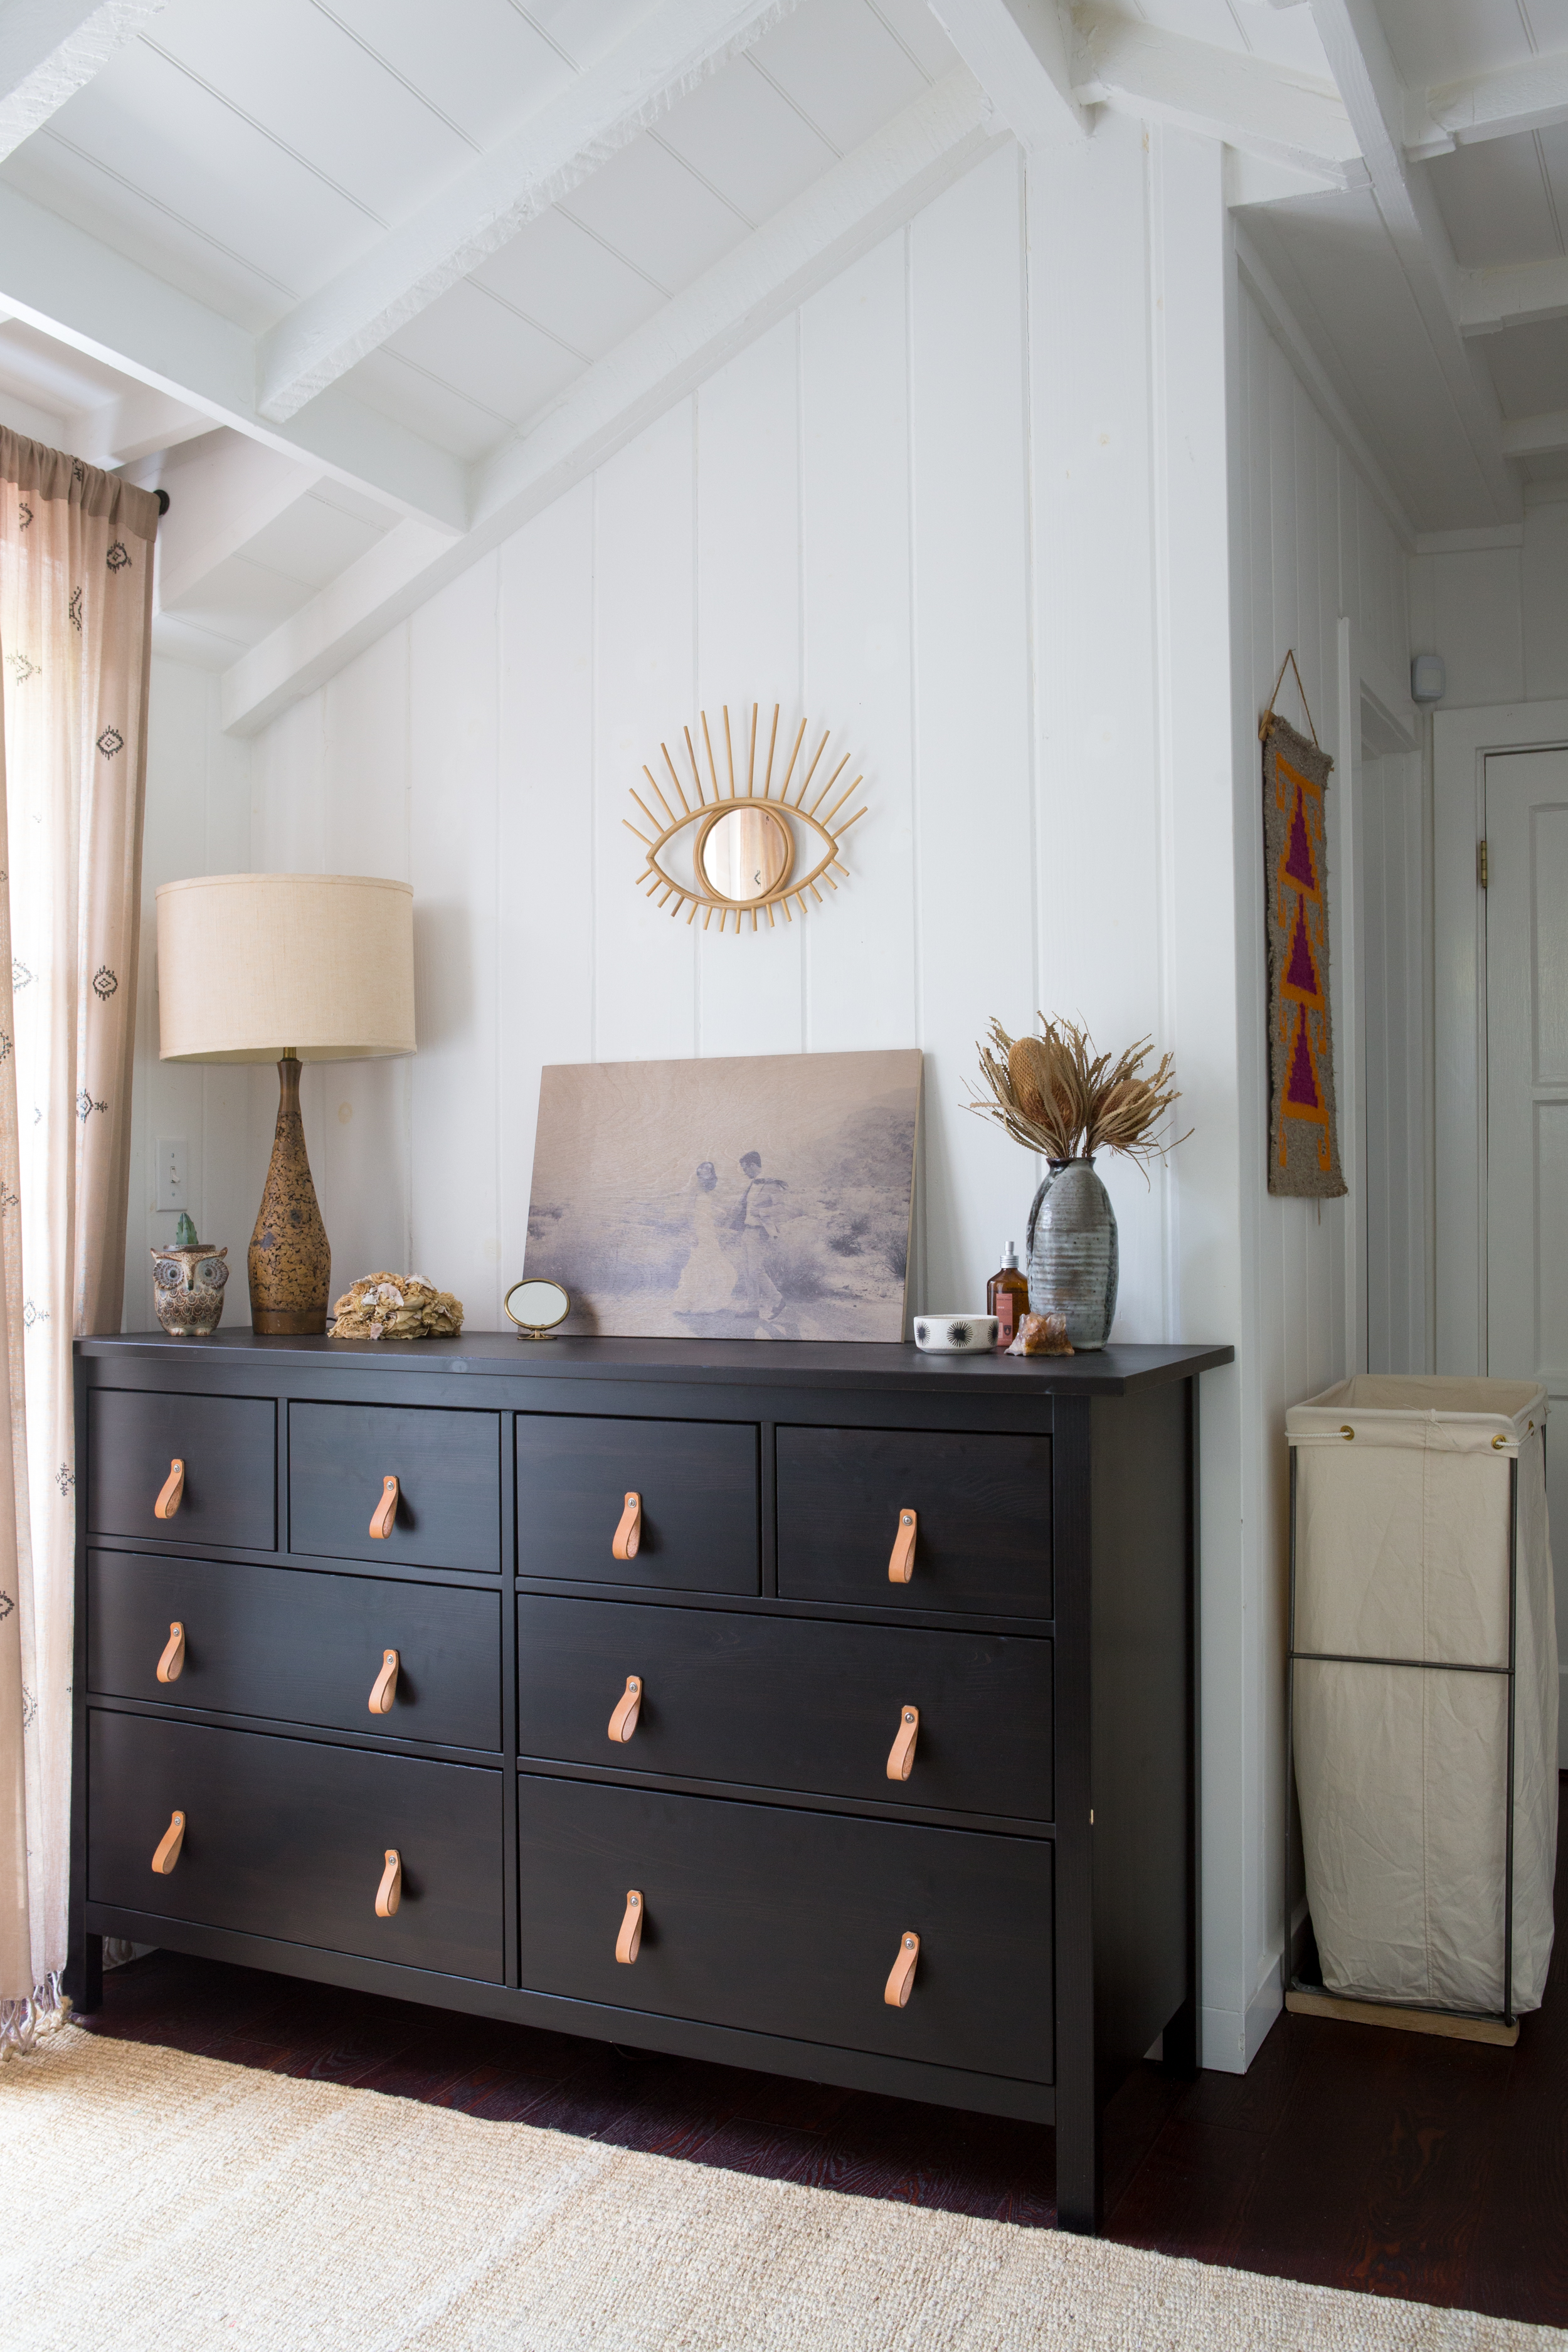 Bedroom Storage Ideas - Small Bedroom Organization  Apartment Therapy